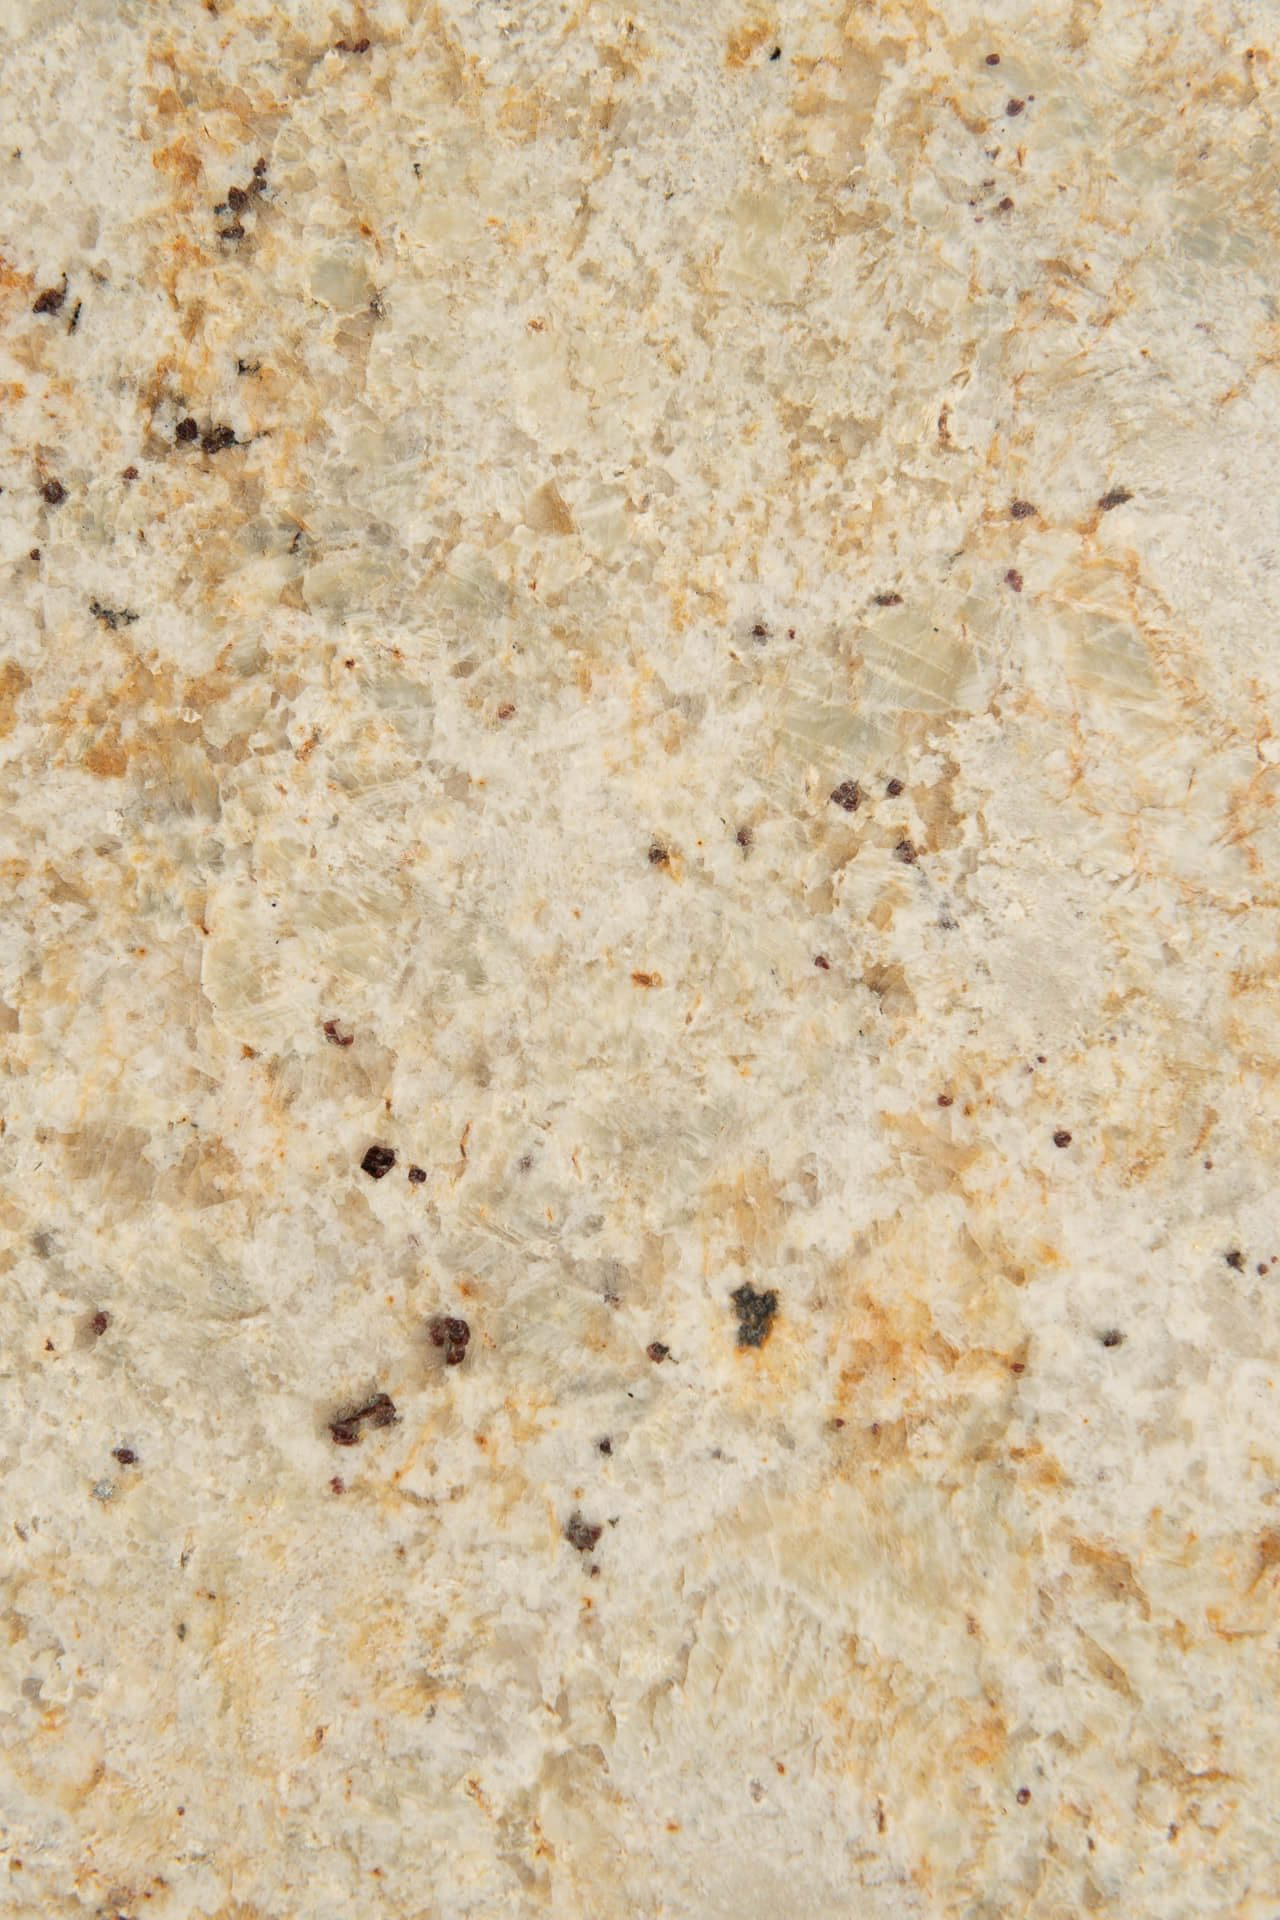 colonial gold cu countertop - by Magnolia Countertops. A Countertop fabricator of Granite Countertops, Marble Countertops, and Quartz Countertops in Cookeville and Crossville TN.